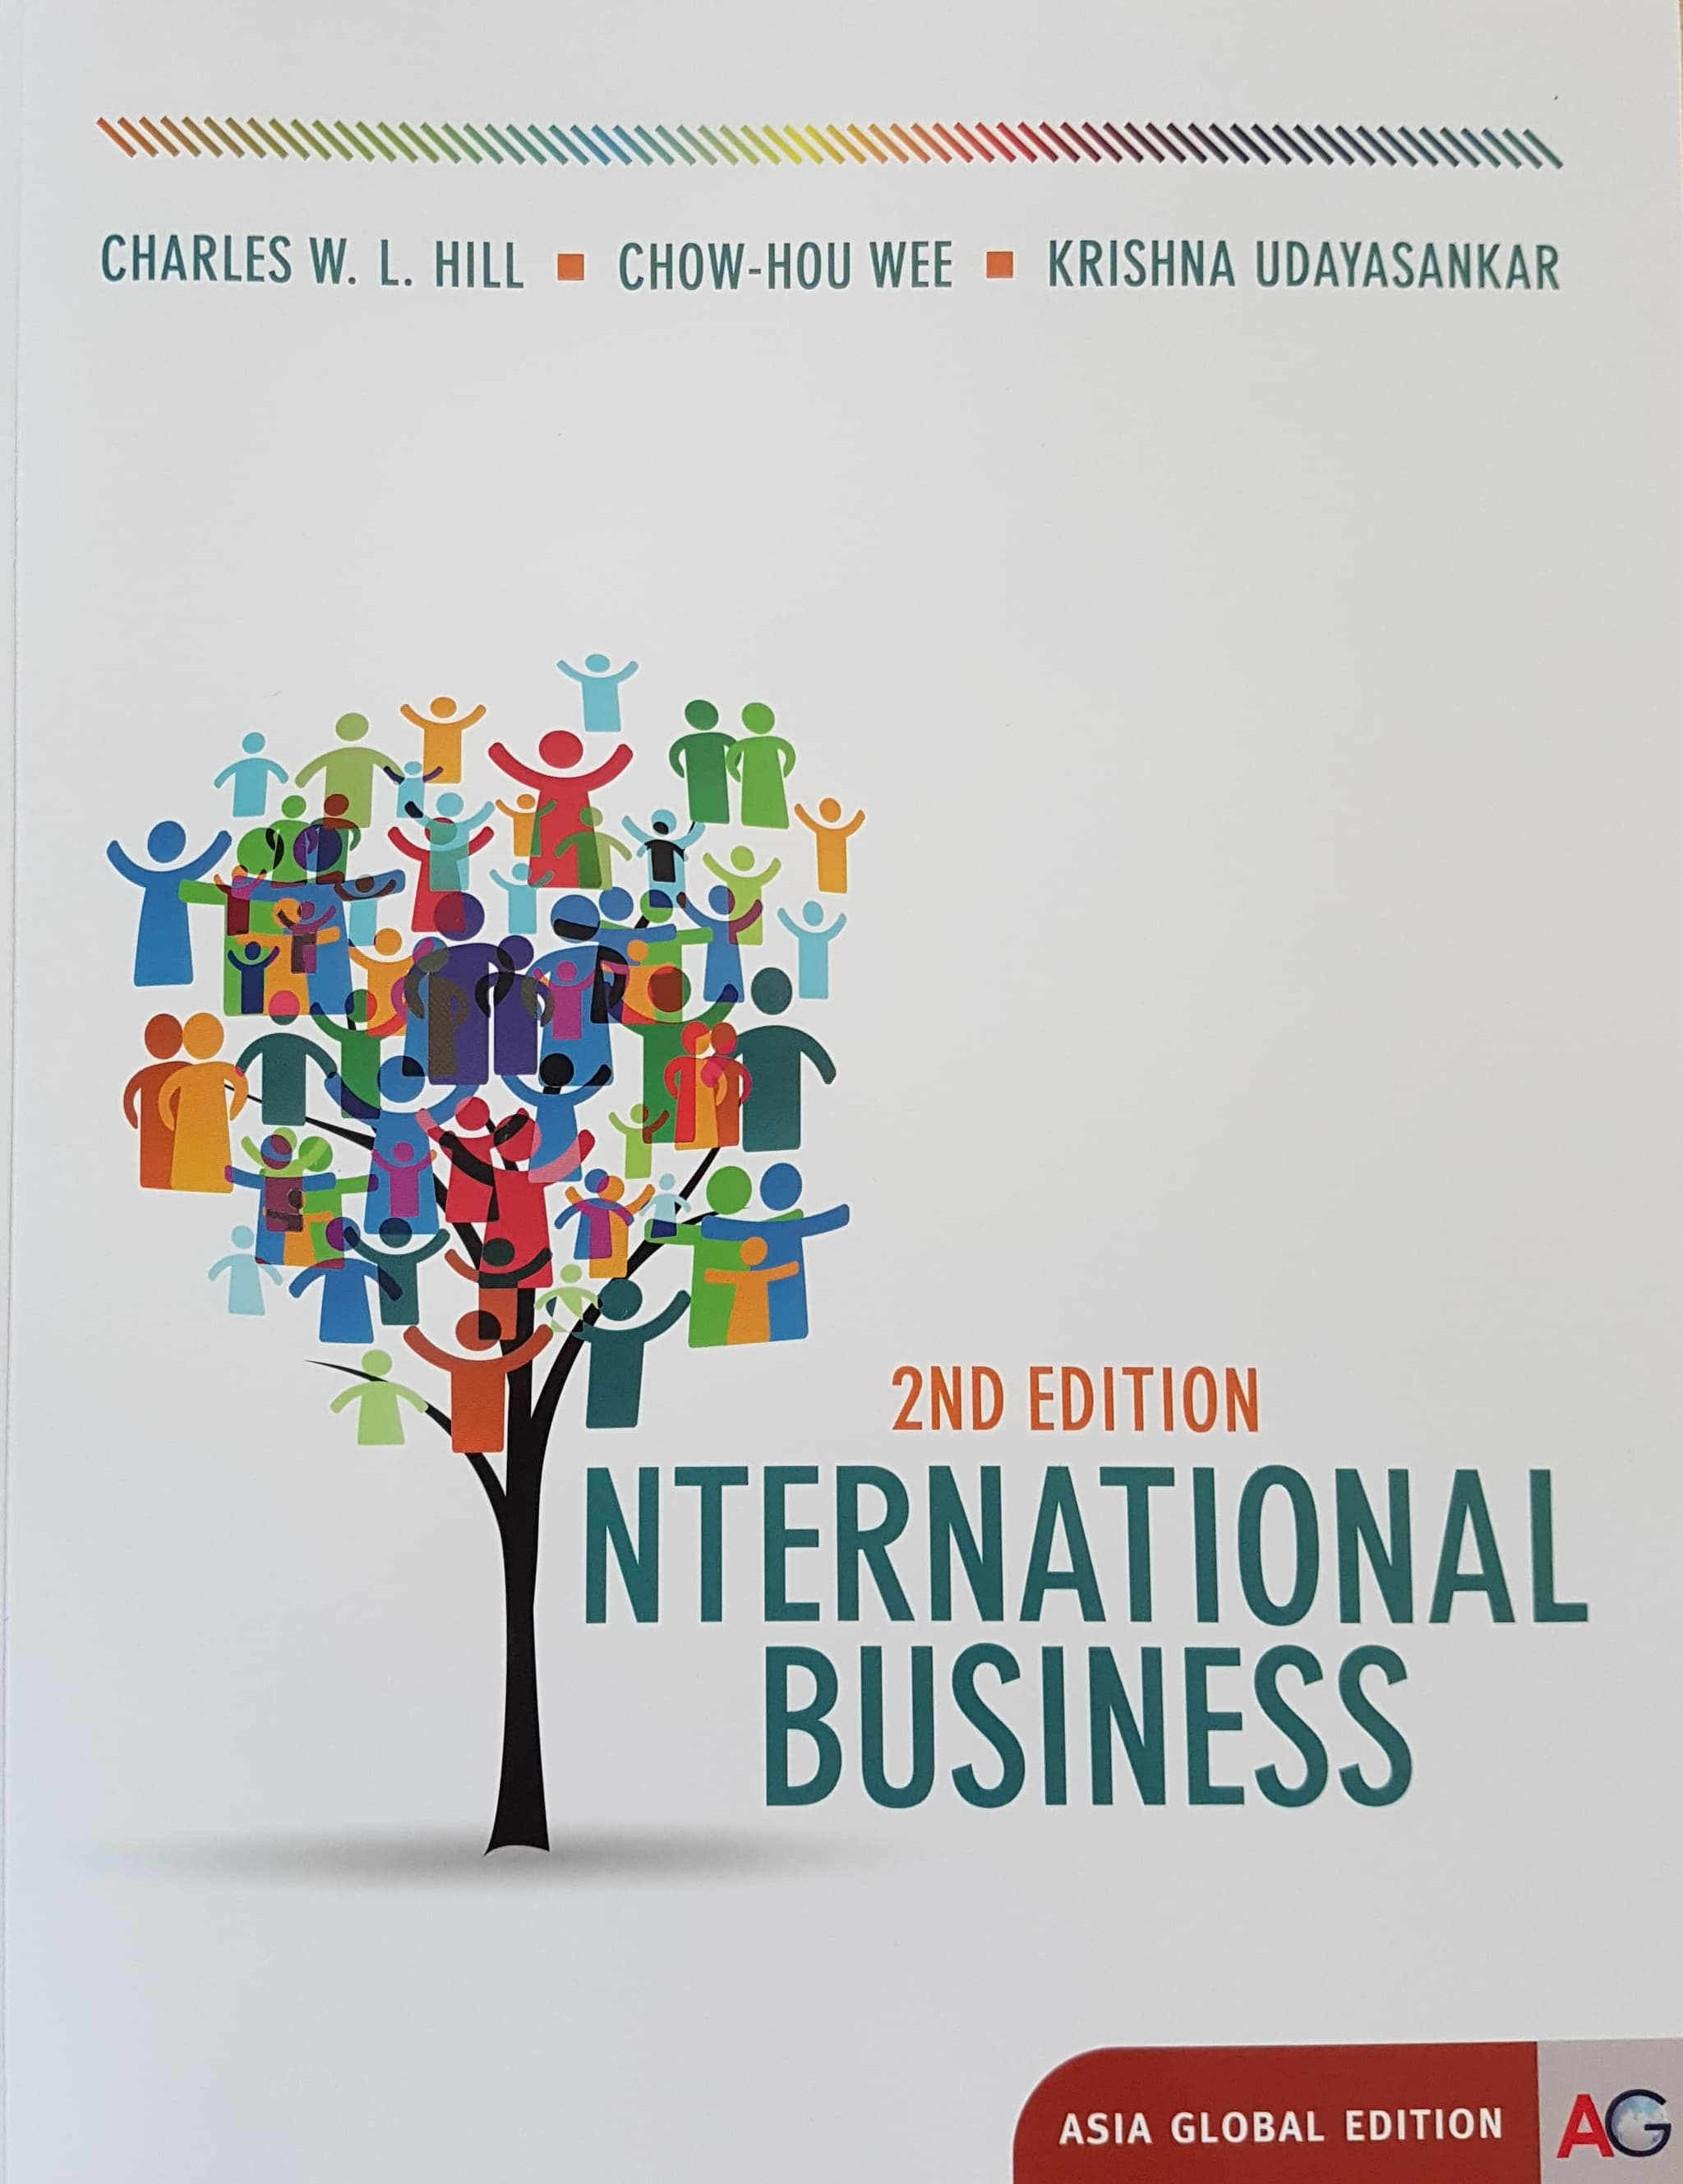 [ORIGINAL] International Business Asia 2e - Charler W. Hill